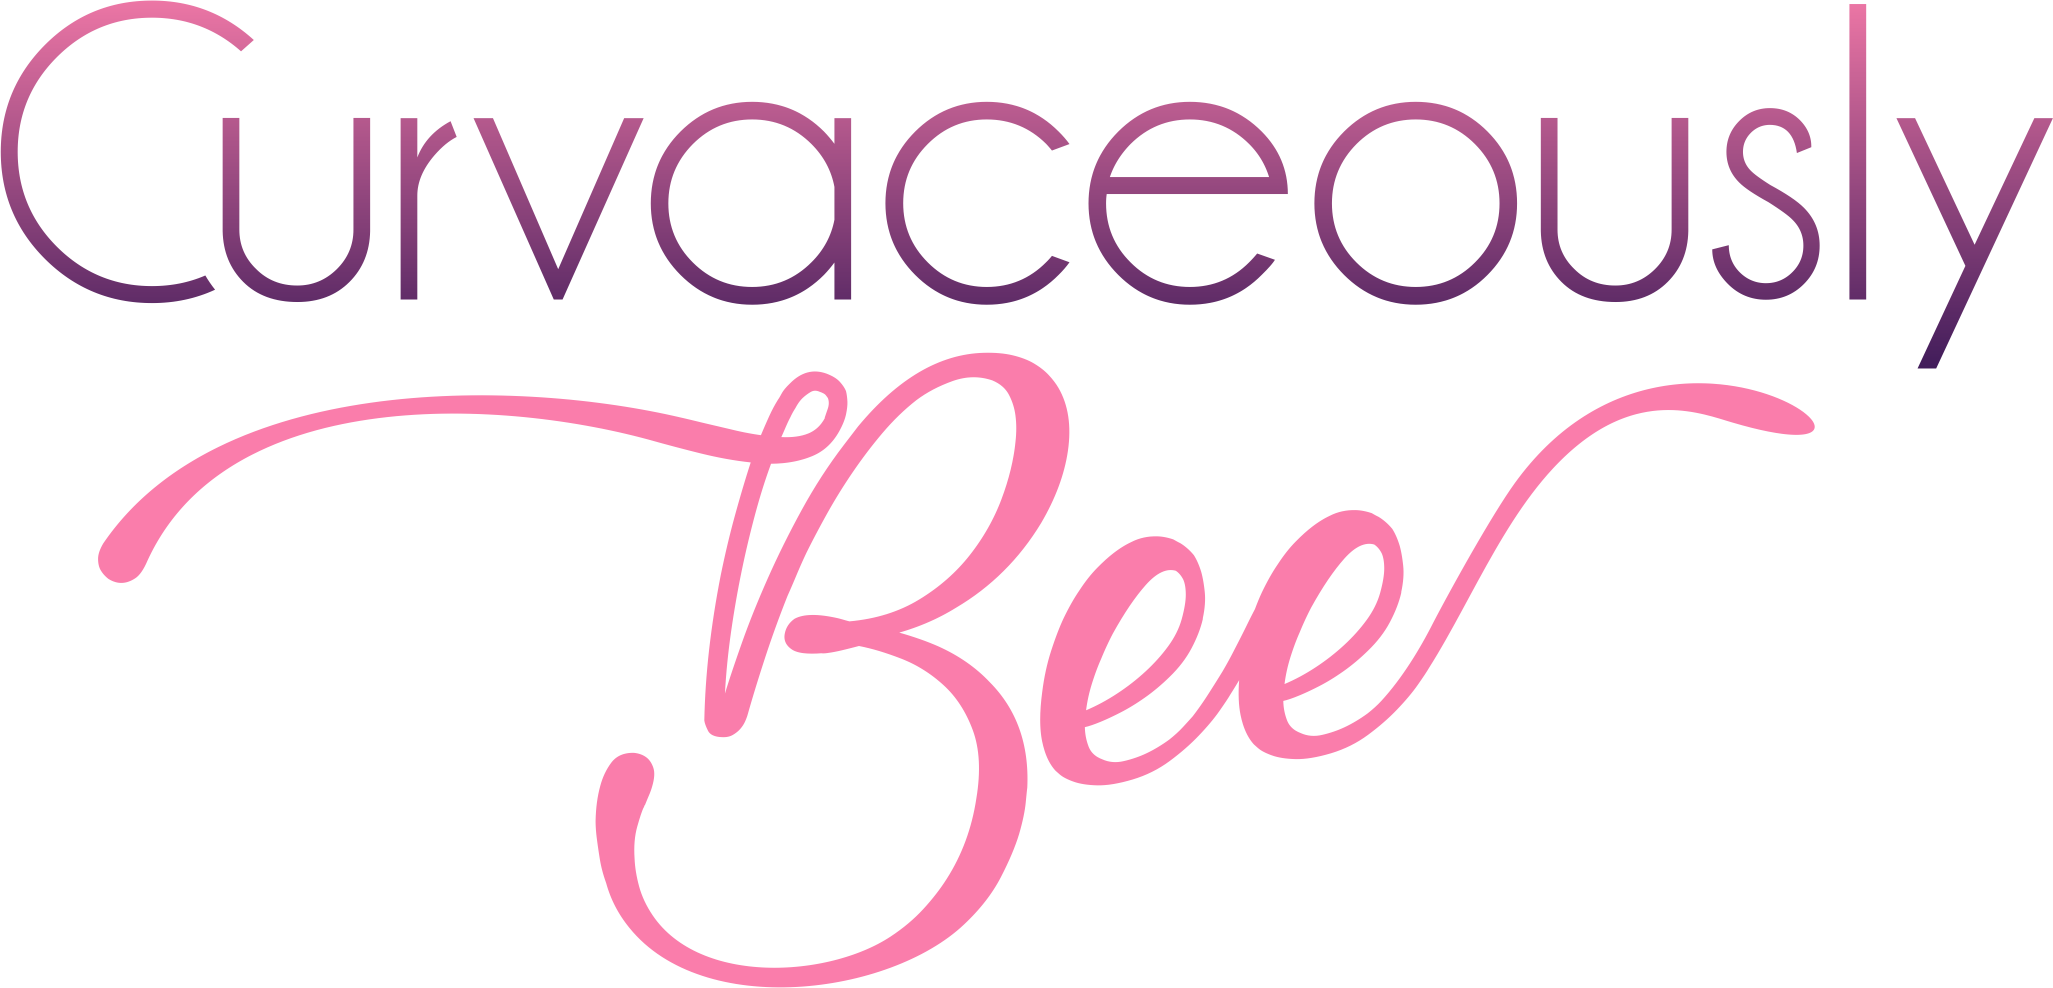 CURVACEOUSLY BEE